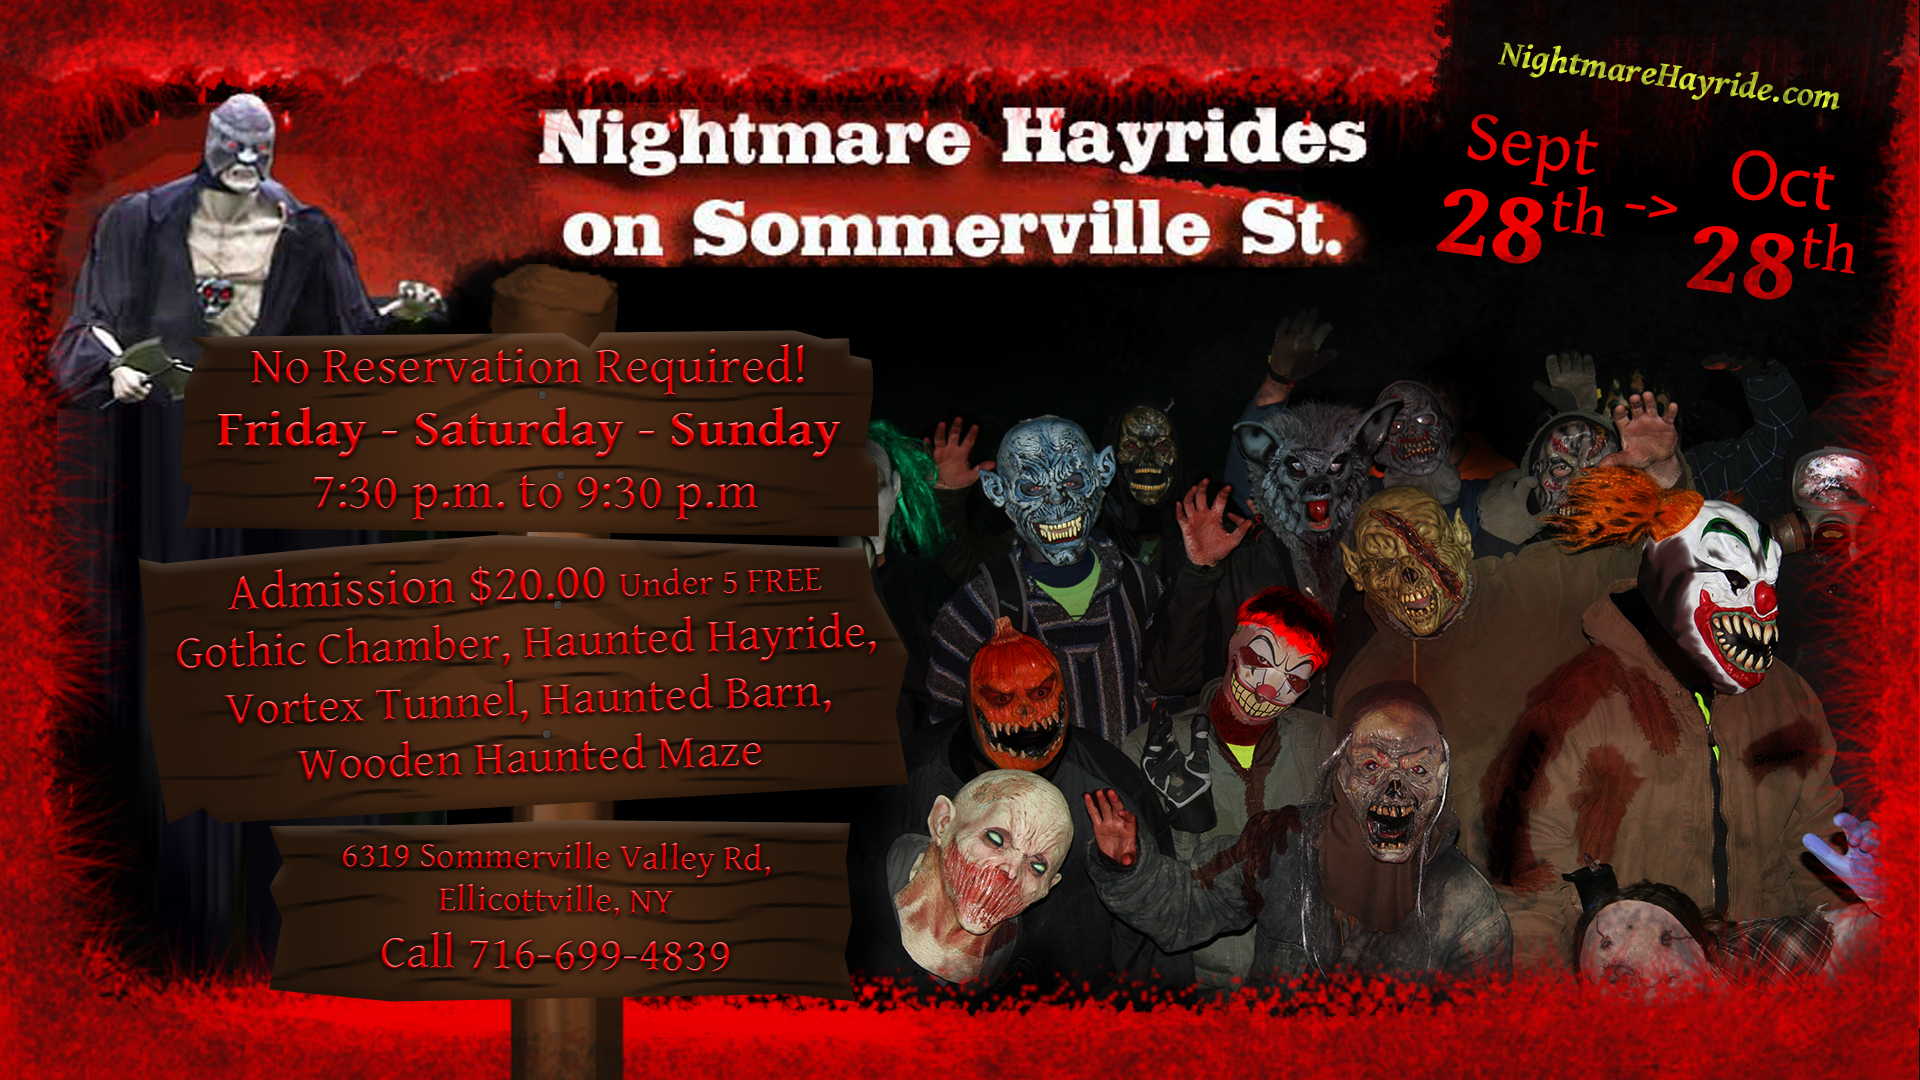 Nightmare Hayrides on Sommerville St. 2018